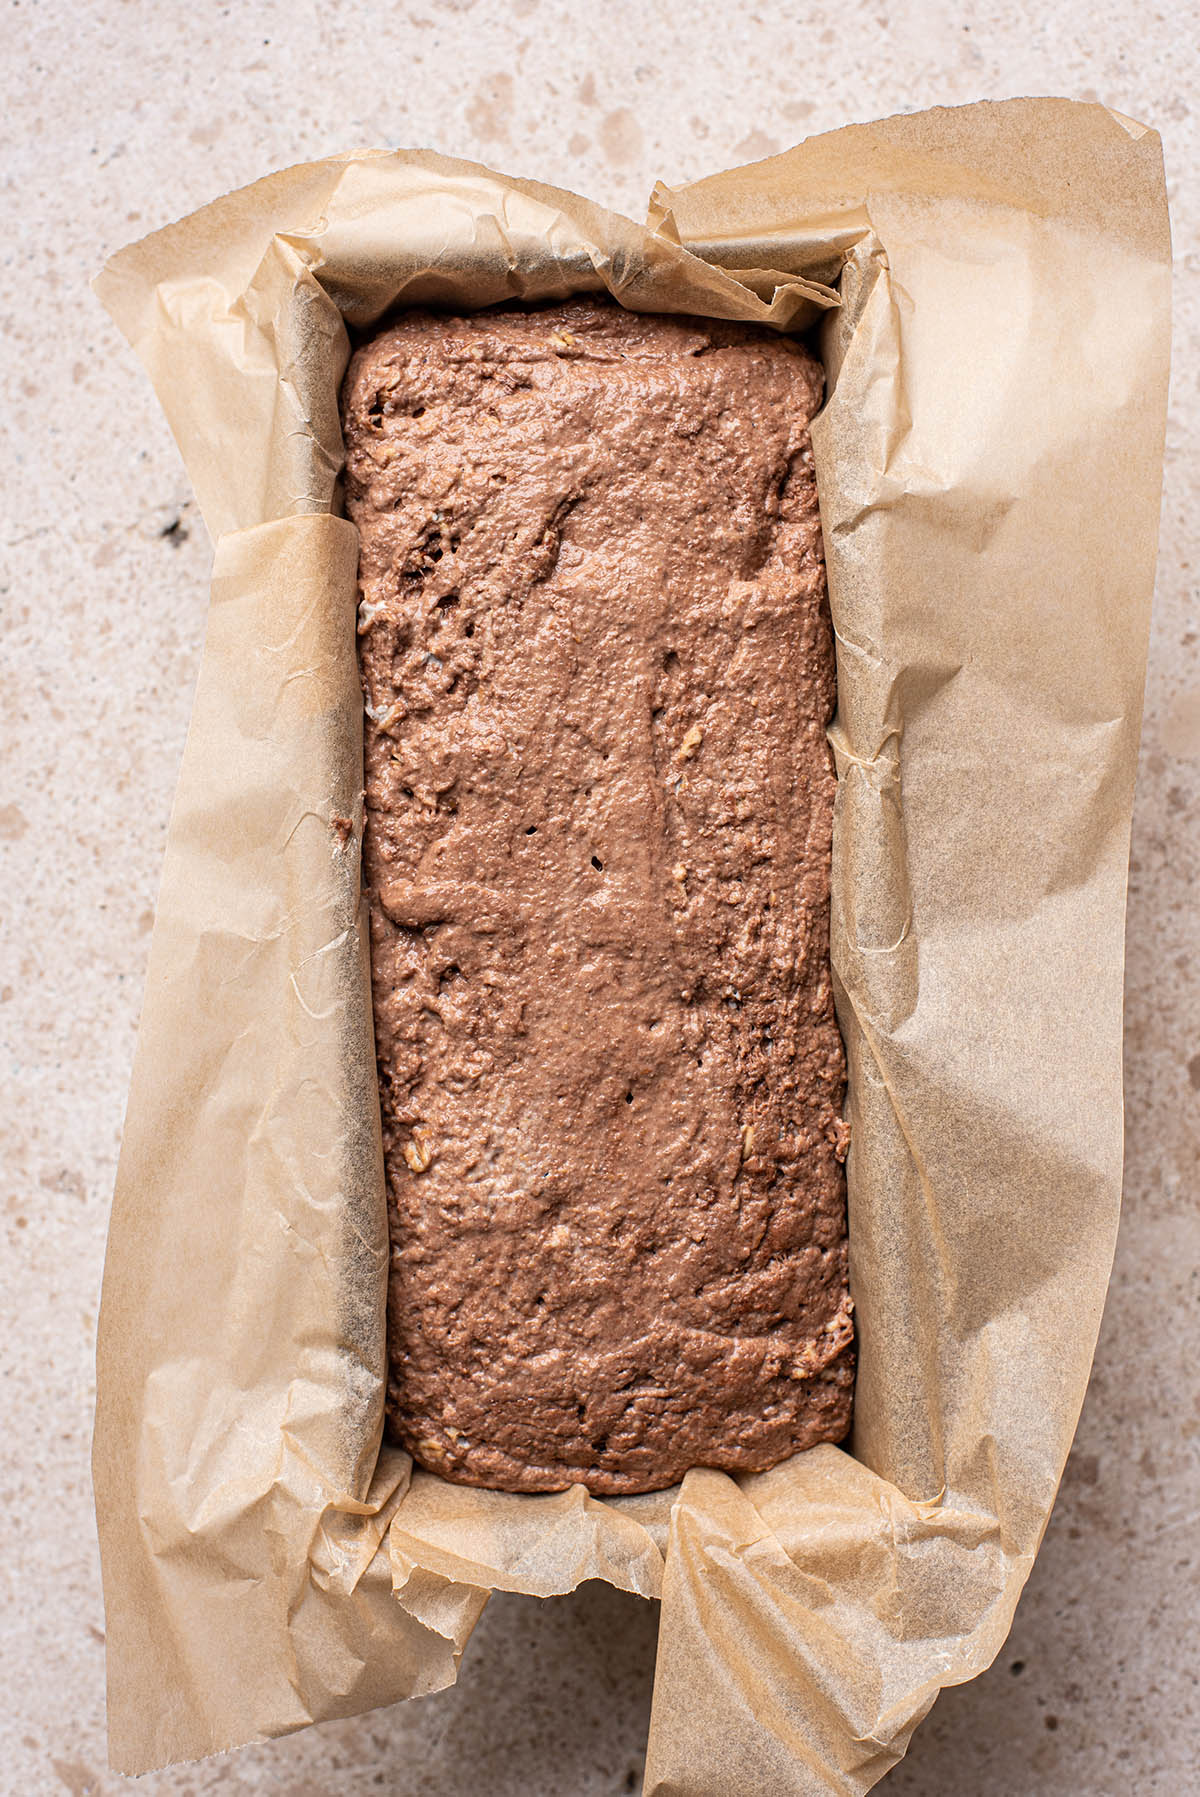 An unbaked loaf of rye bread in a paper-lined tin.